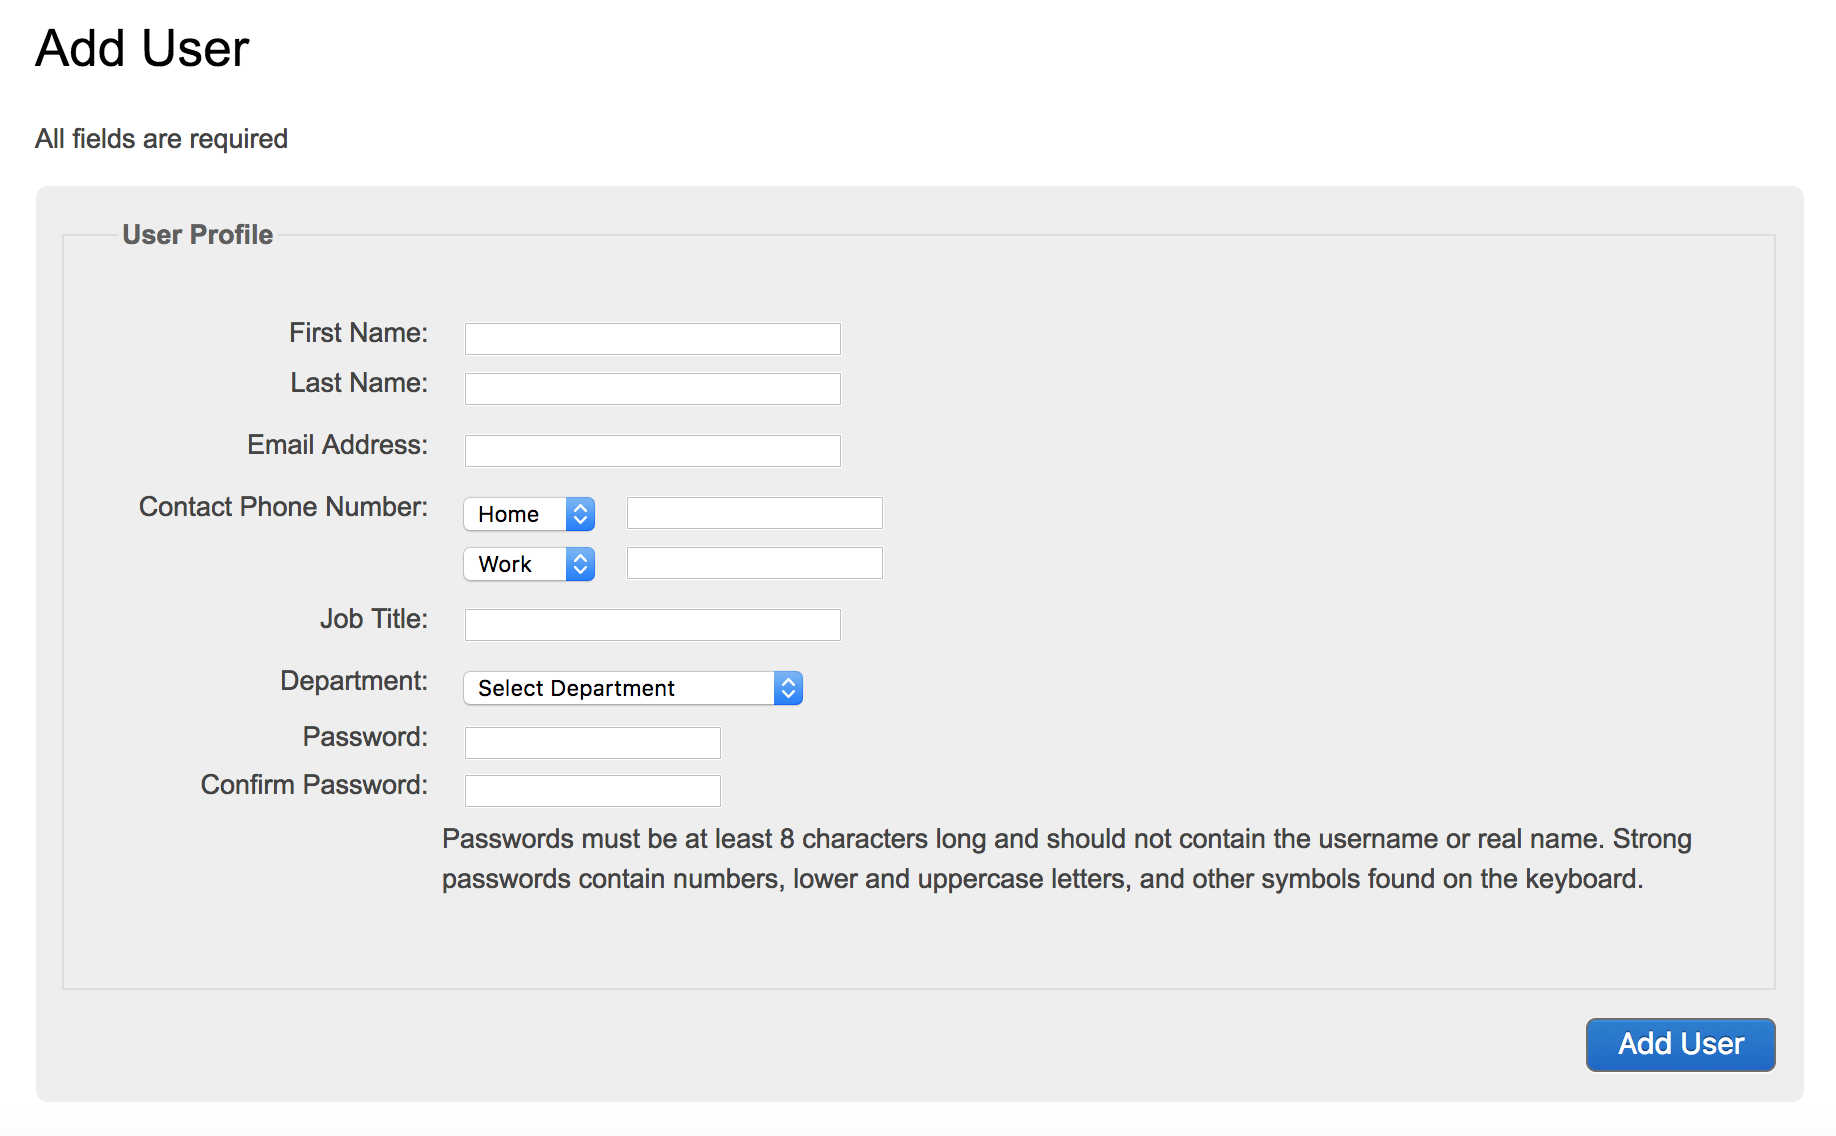 Screenshot showing the form you must fill in to add a new user in Citizen Space